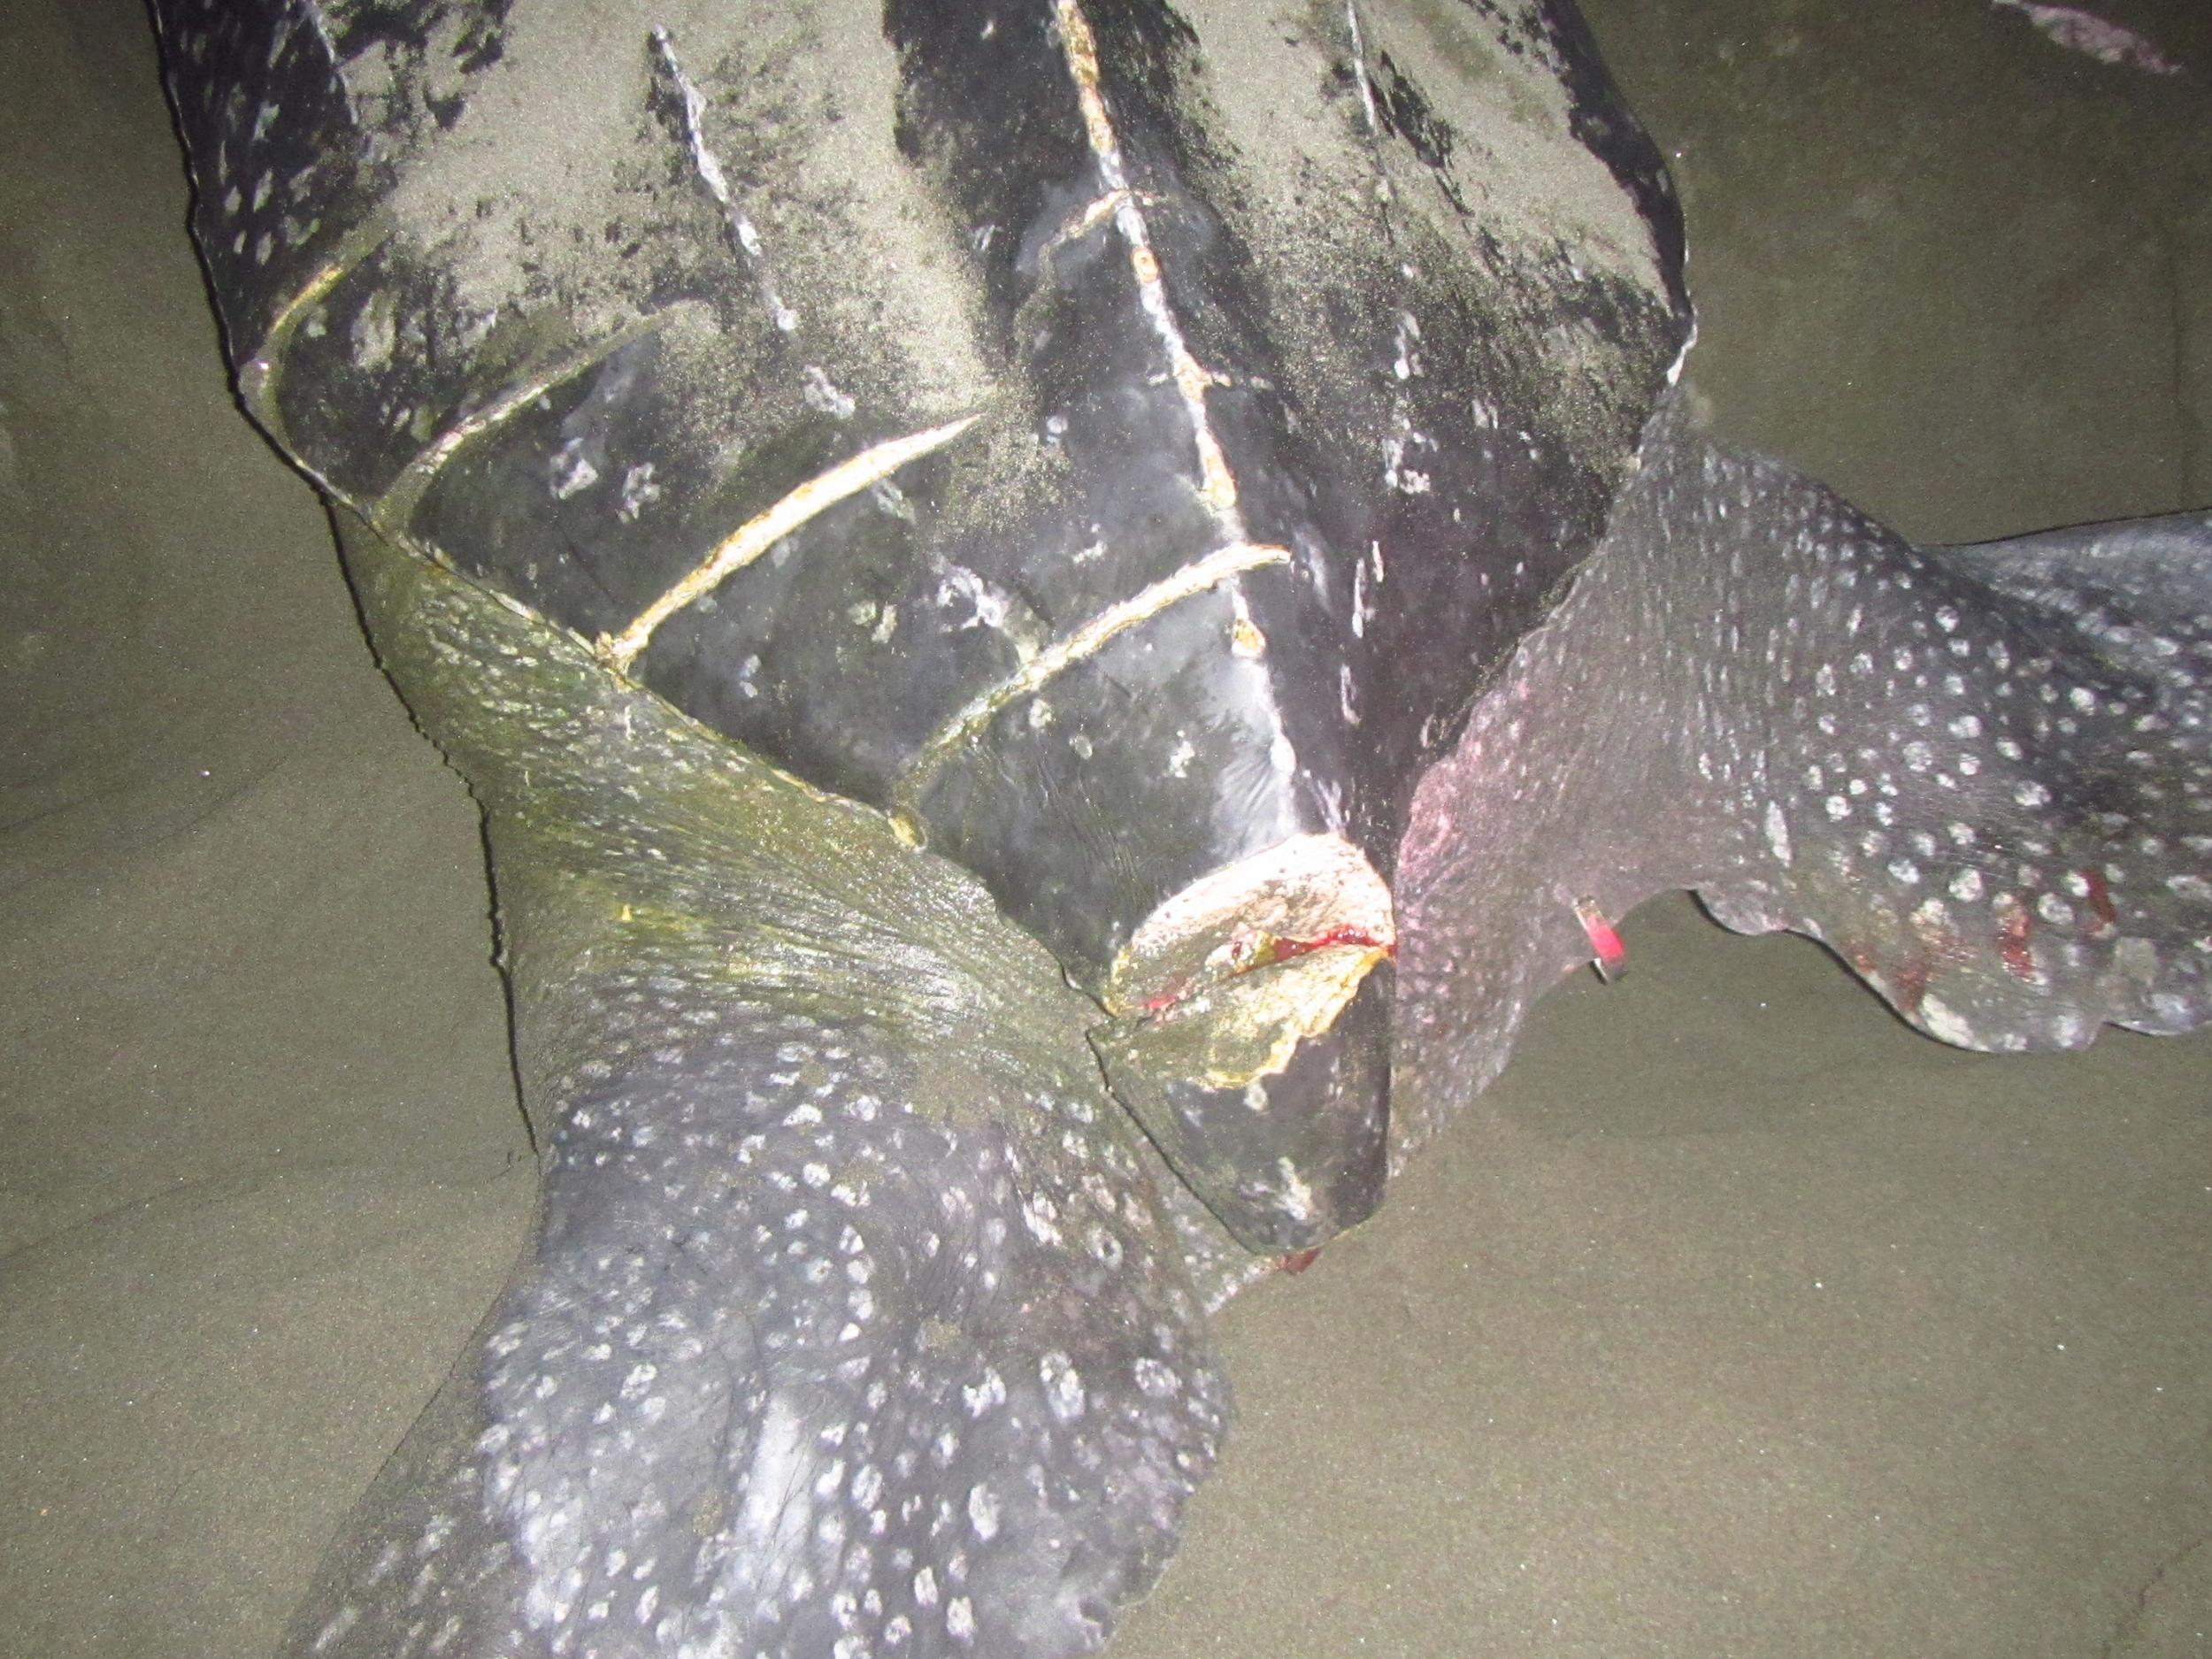 POTD: Nesting female leatherback in Pacuare Nature Reserve, Costa Rica, with boat propeller cuts myd.as/p7358